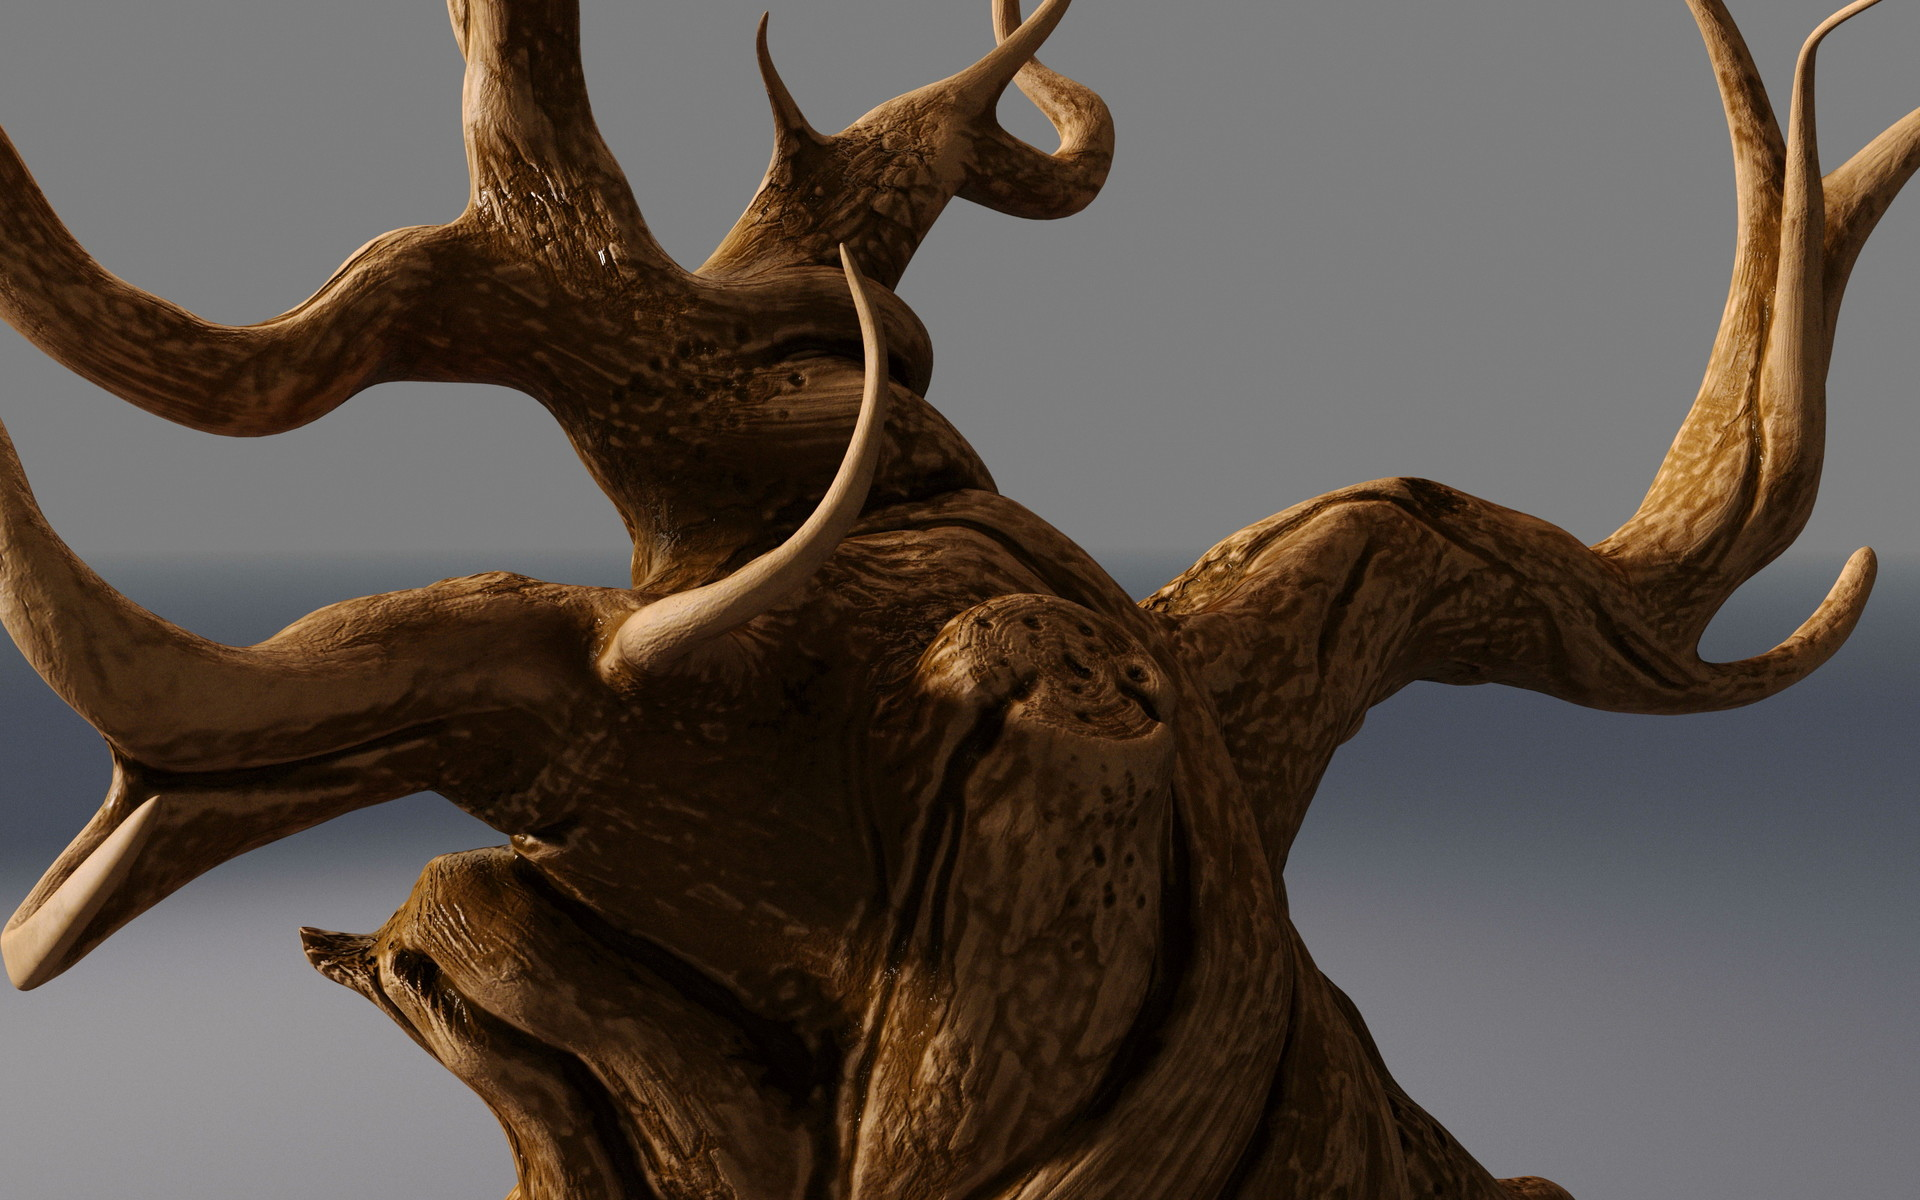 Eugene melnikov big tree render2 0006 c